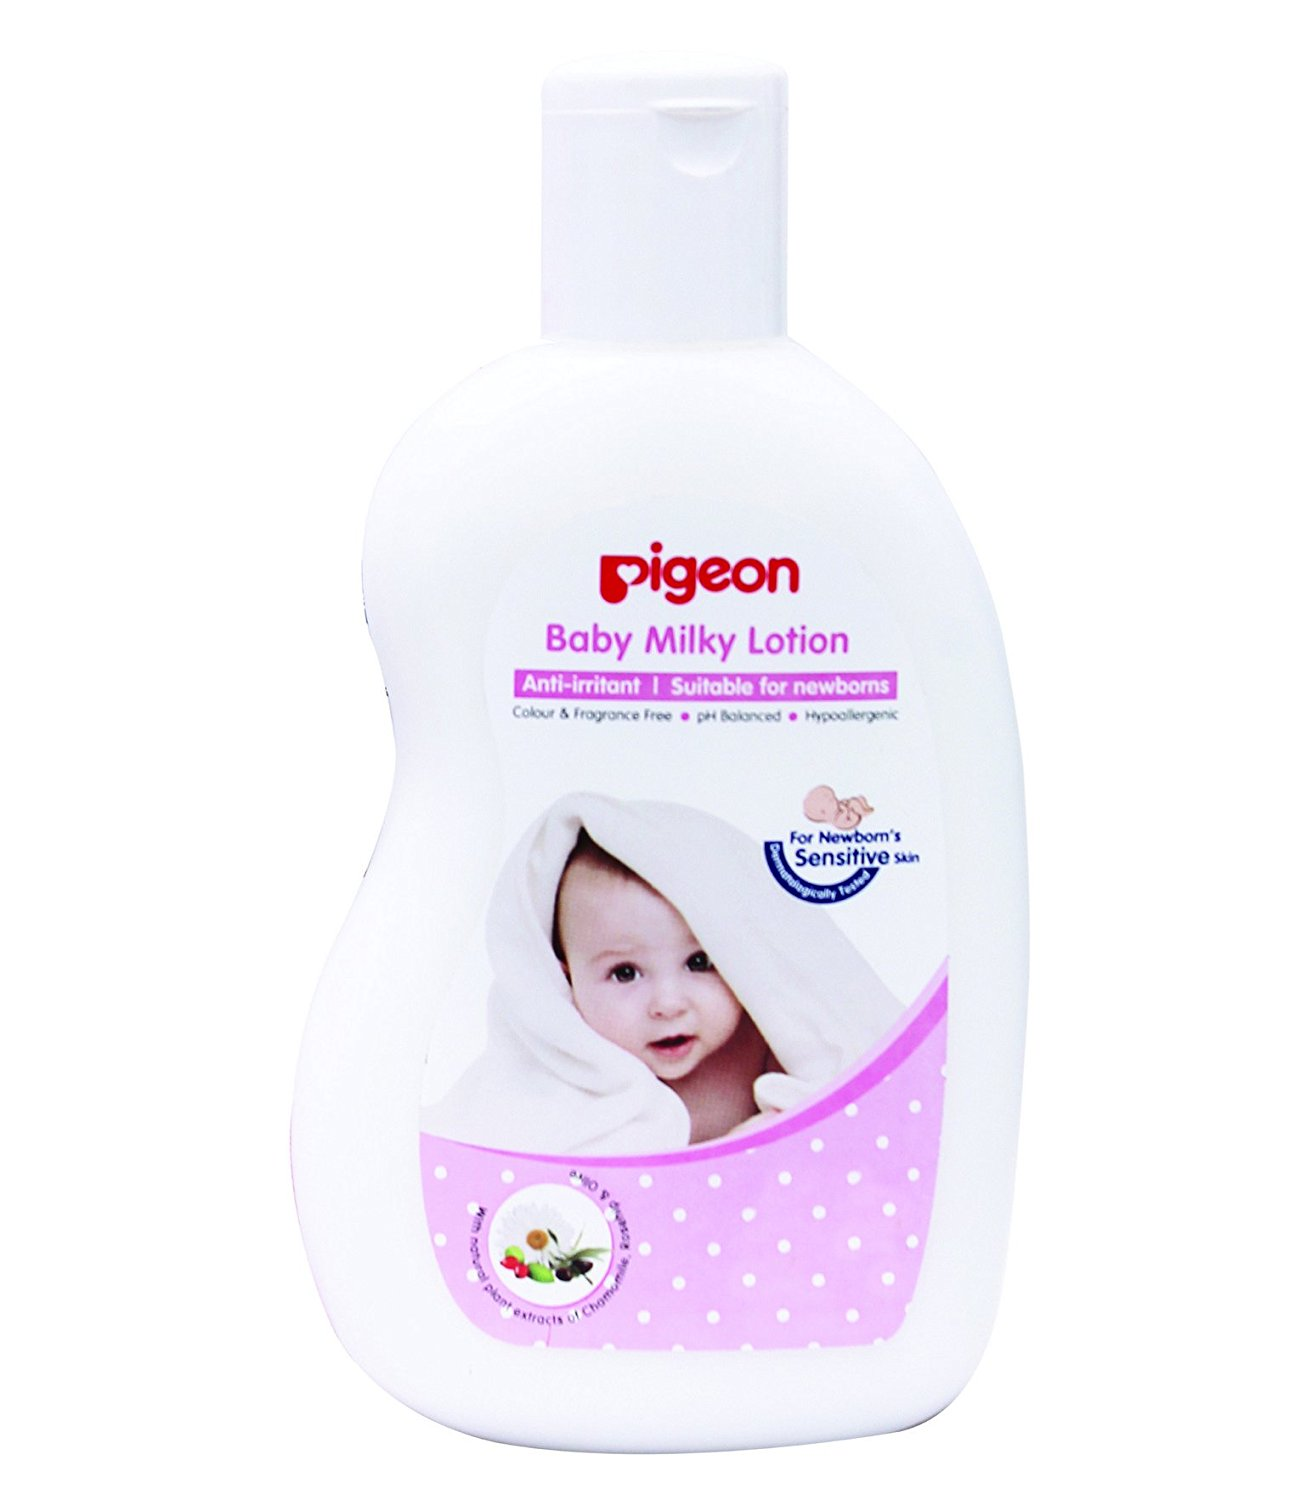 5b434006a1ab9pigeon baby milky lotion 200ml.jpg